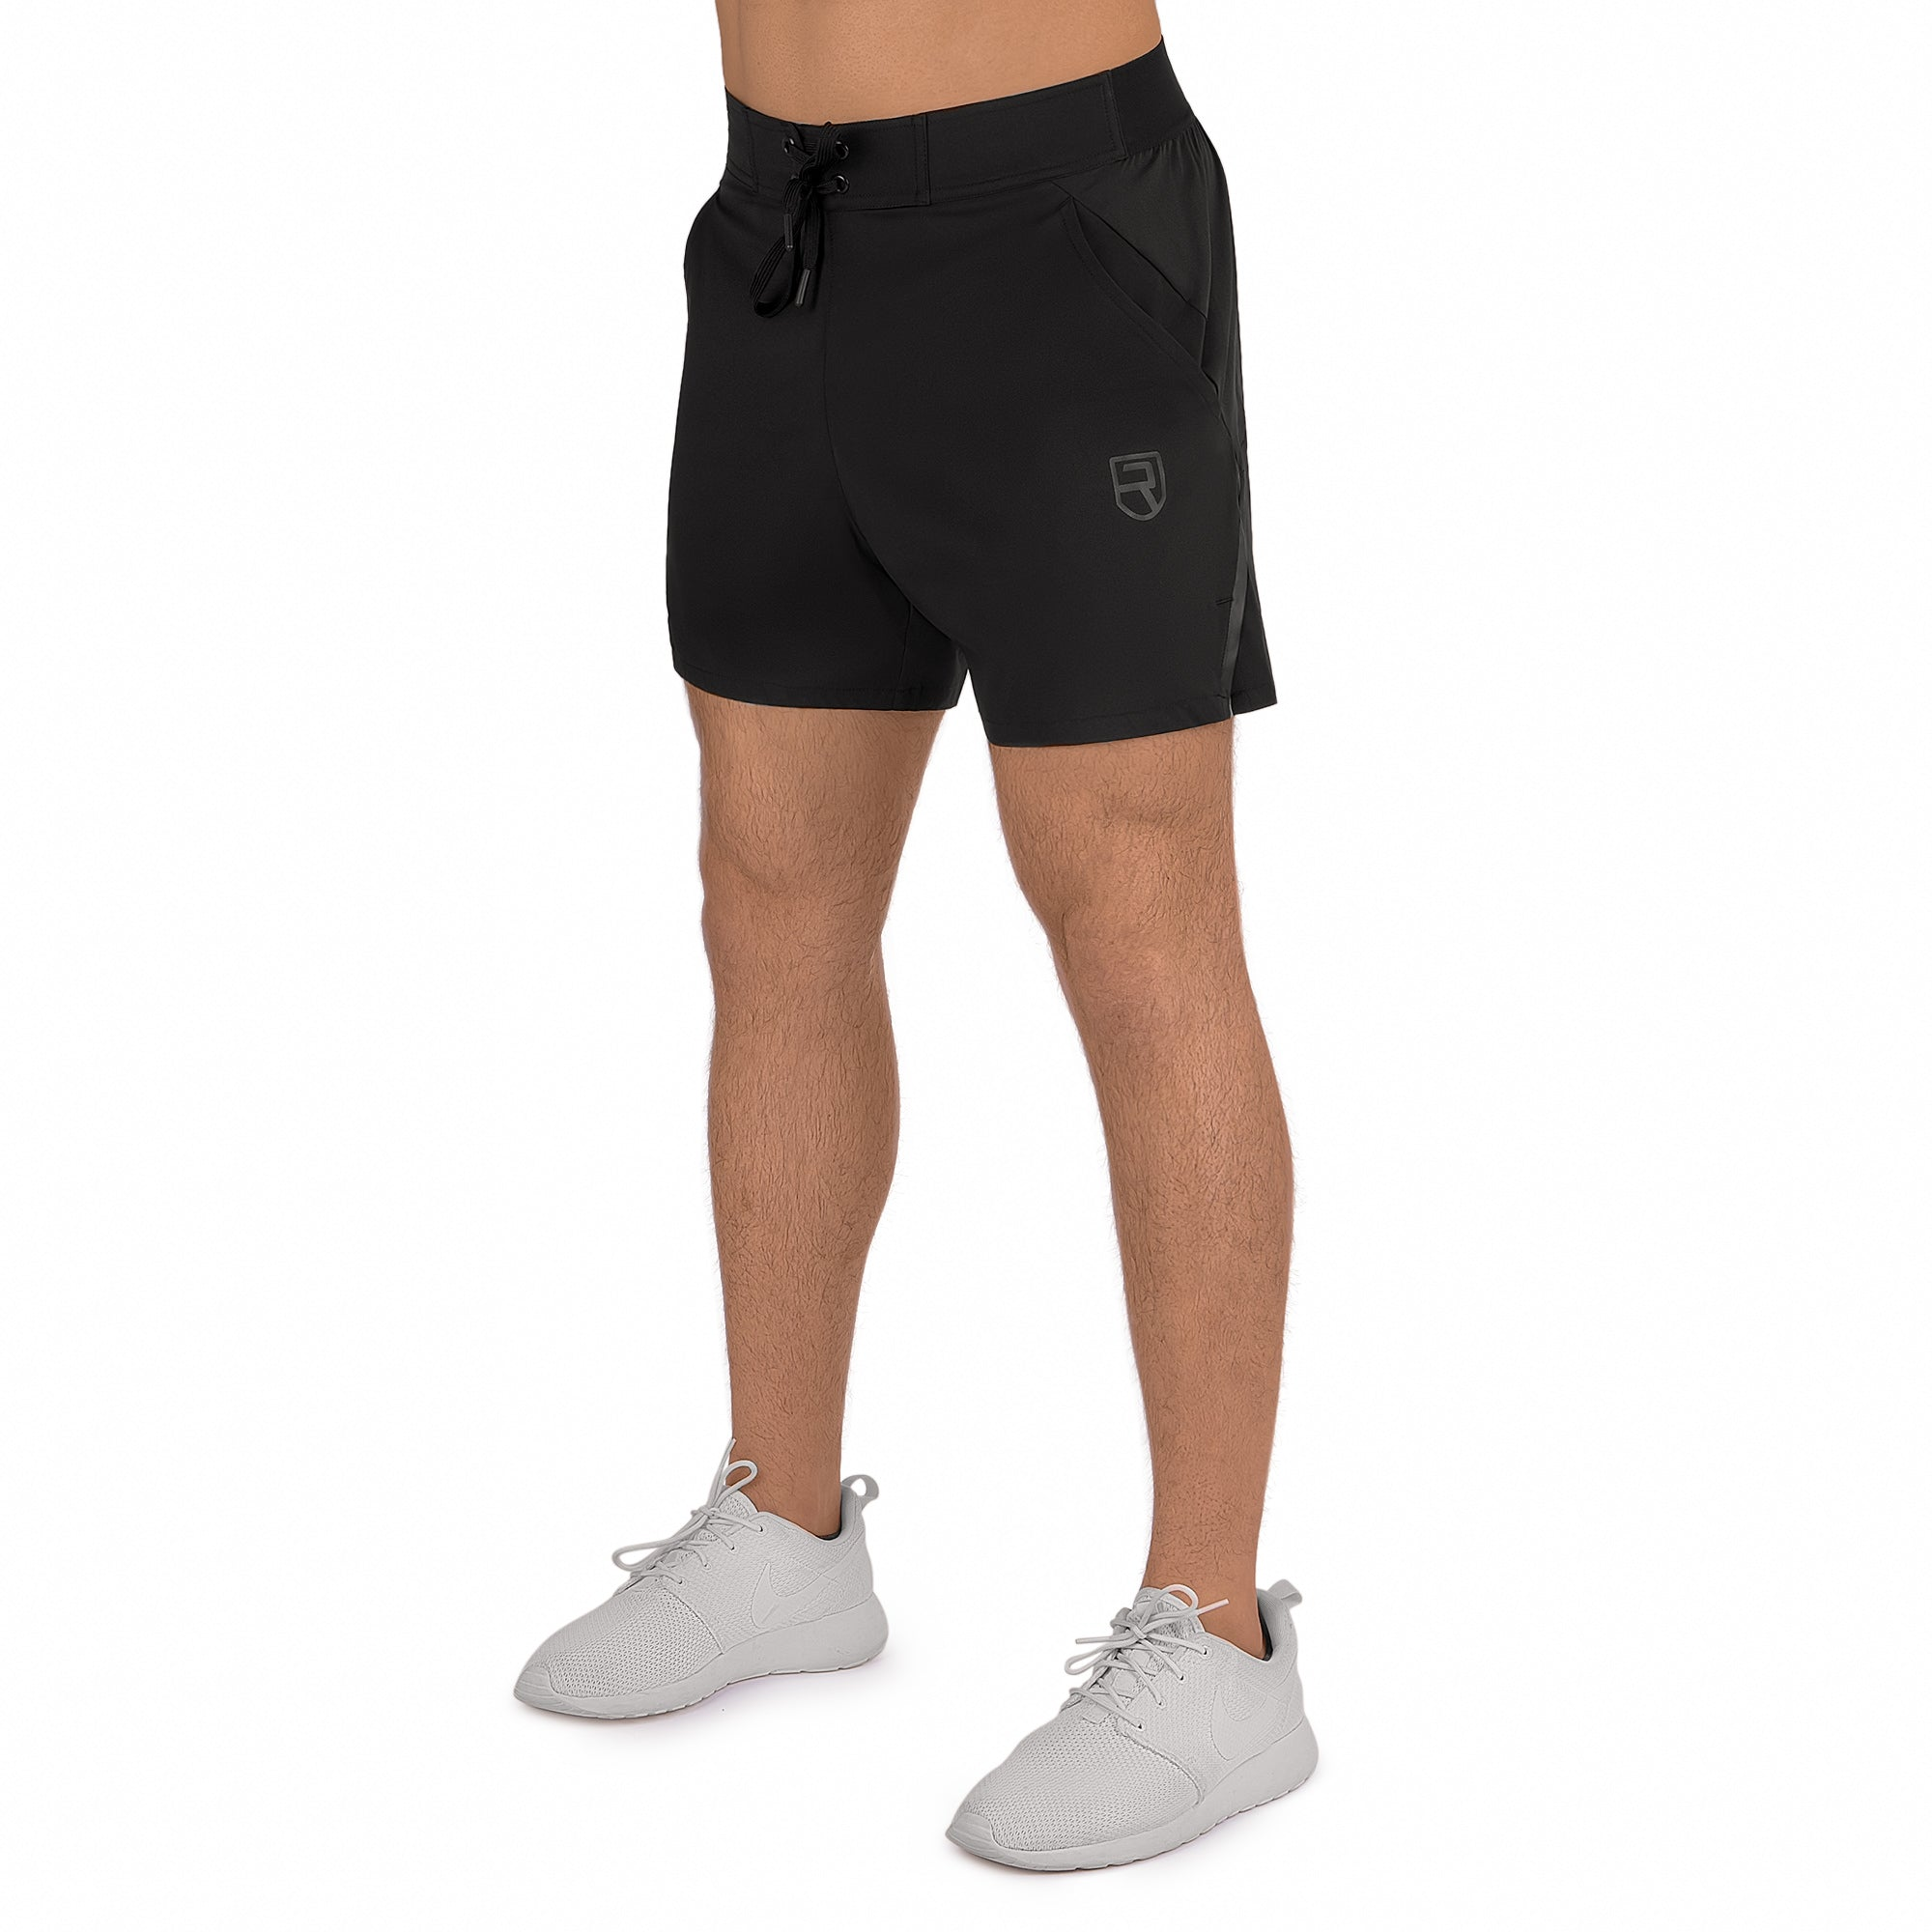 "Eclipse shorts 5"" - Black"